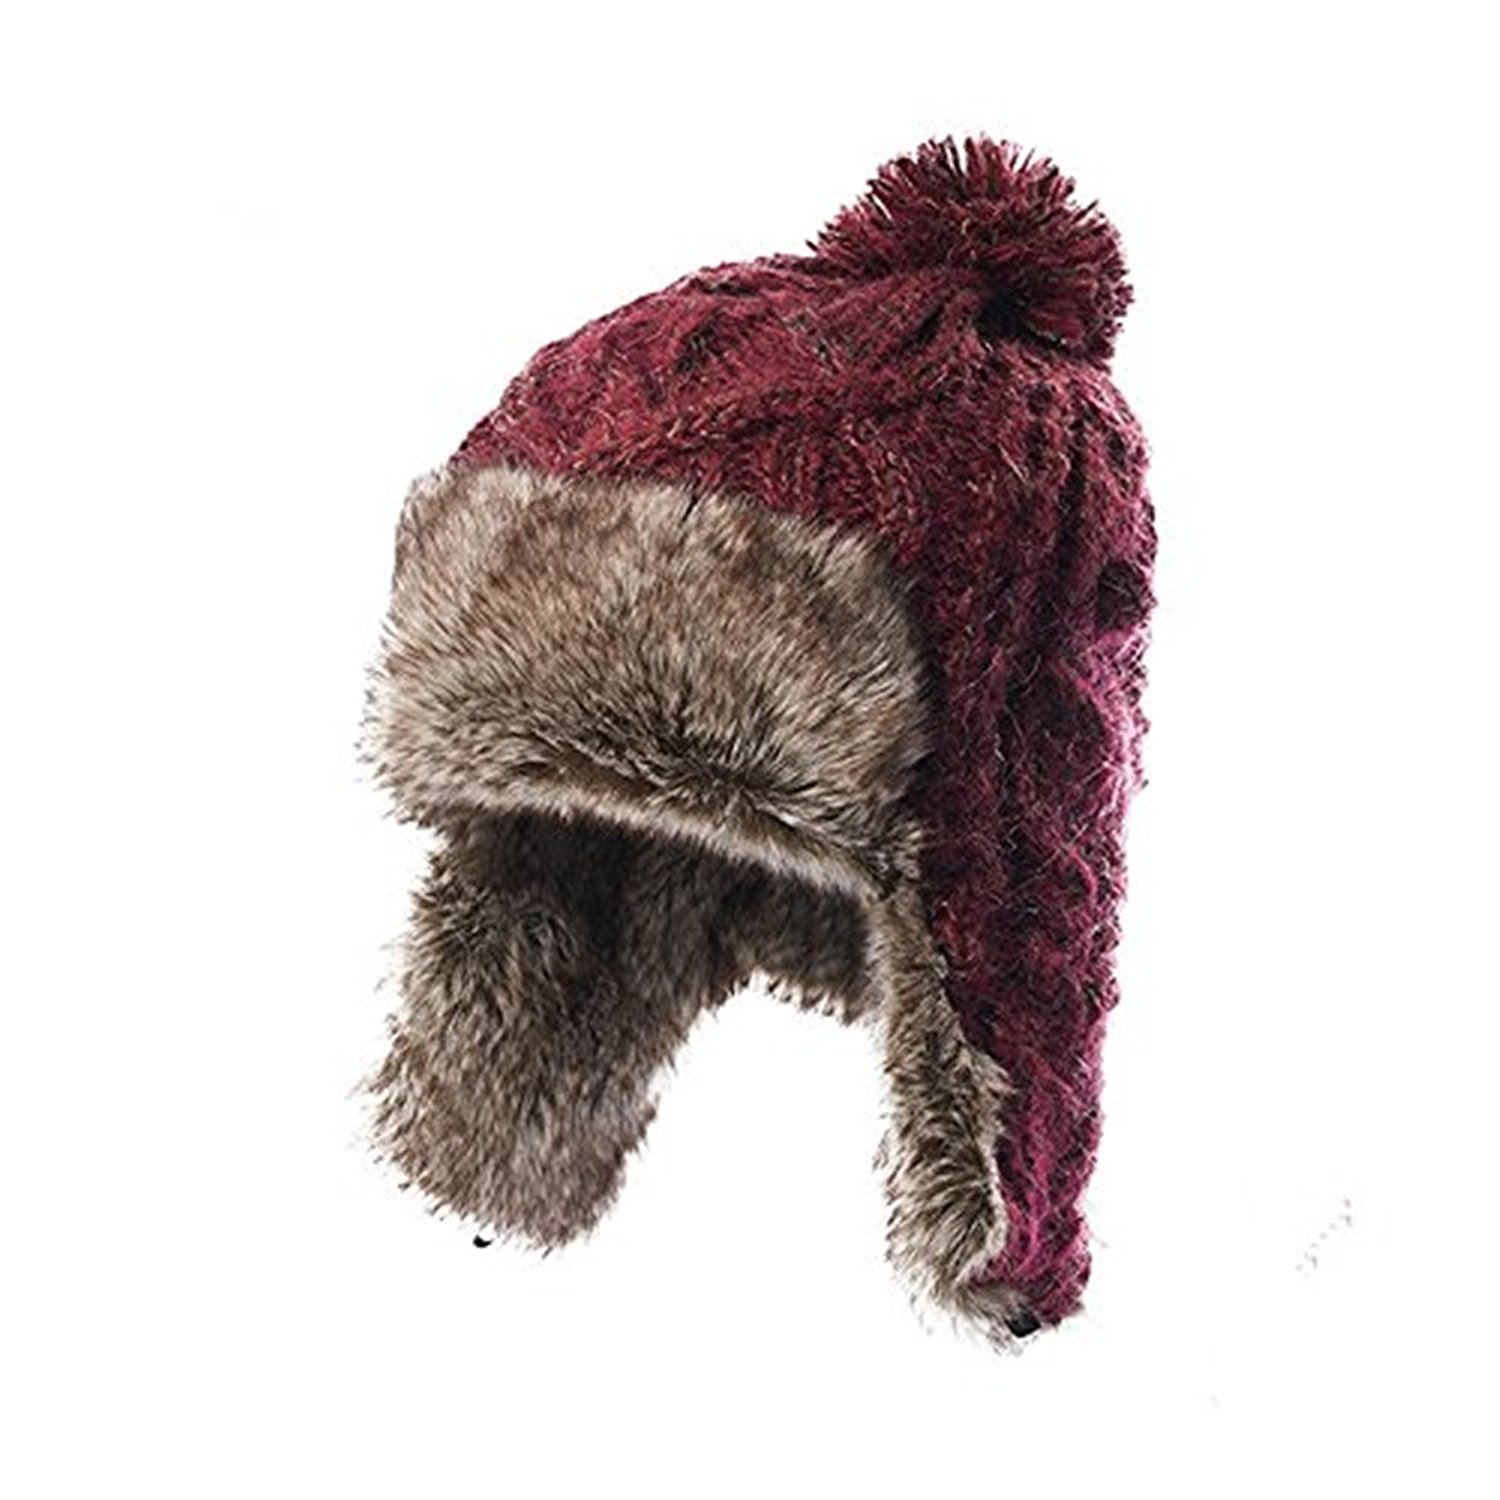 bc7cfea97d257 Get Quotations · misslight Winter Hemming Warm Knit Hat Pom Pom Beanie Fur  Raccoon Hairball Cap Winter Hemming Warm